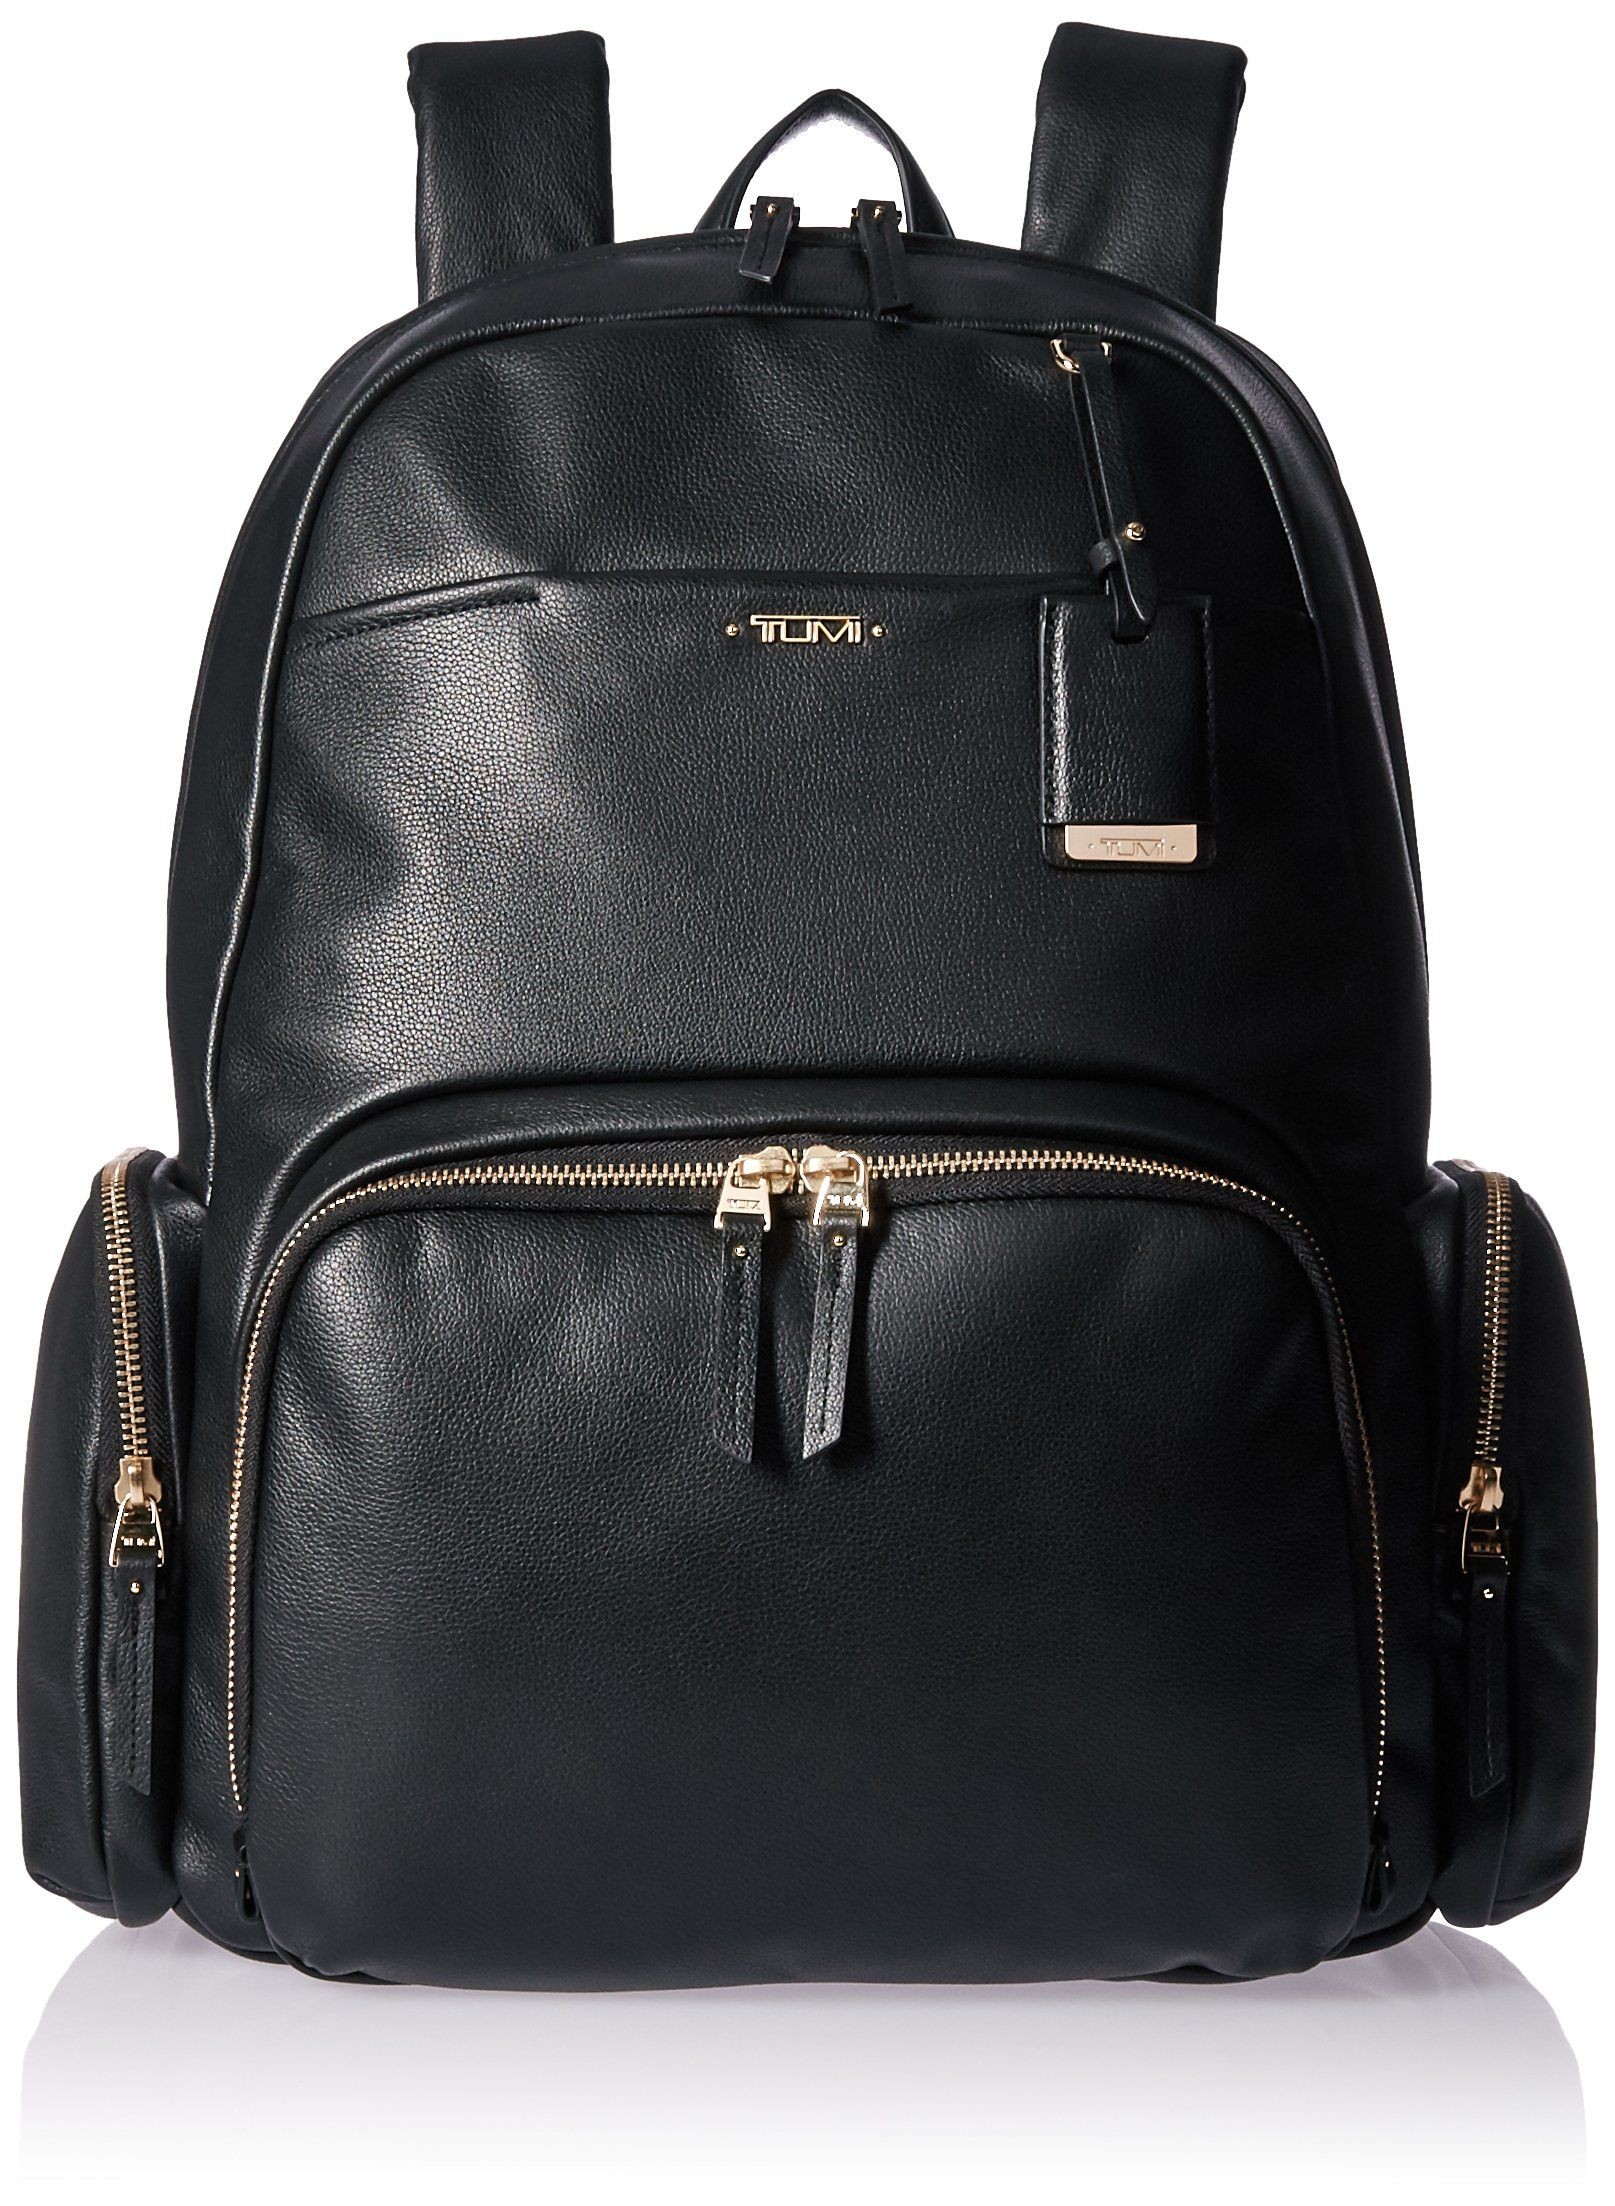 a55cbb082f Tumi Women s Voyageur Leather Calais Backpack